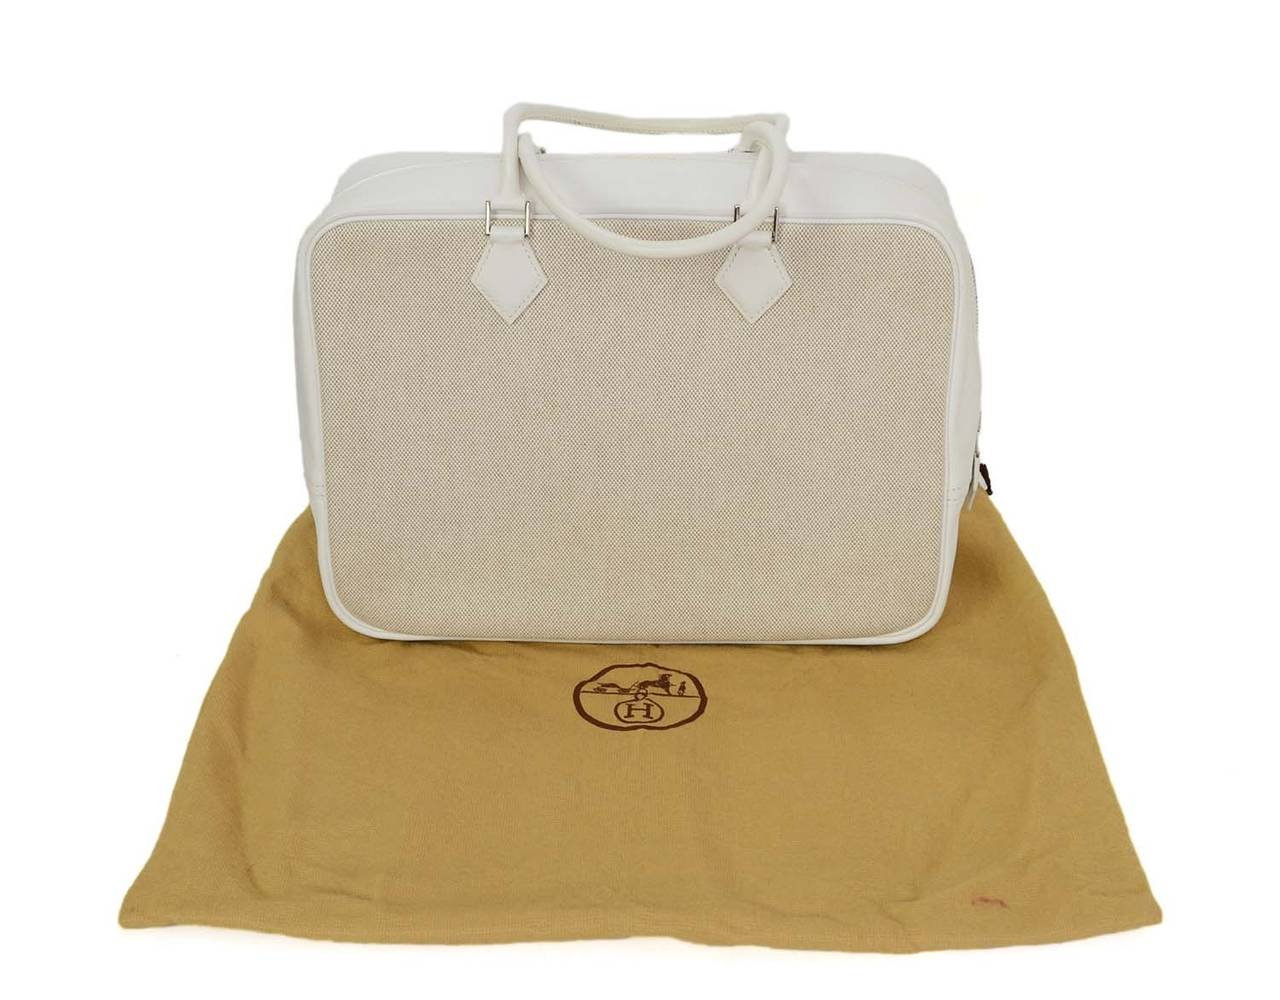 HERMES Beige Canvas & White Leather Plume Bag PHW 9